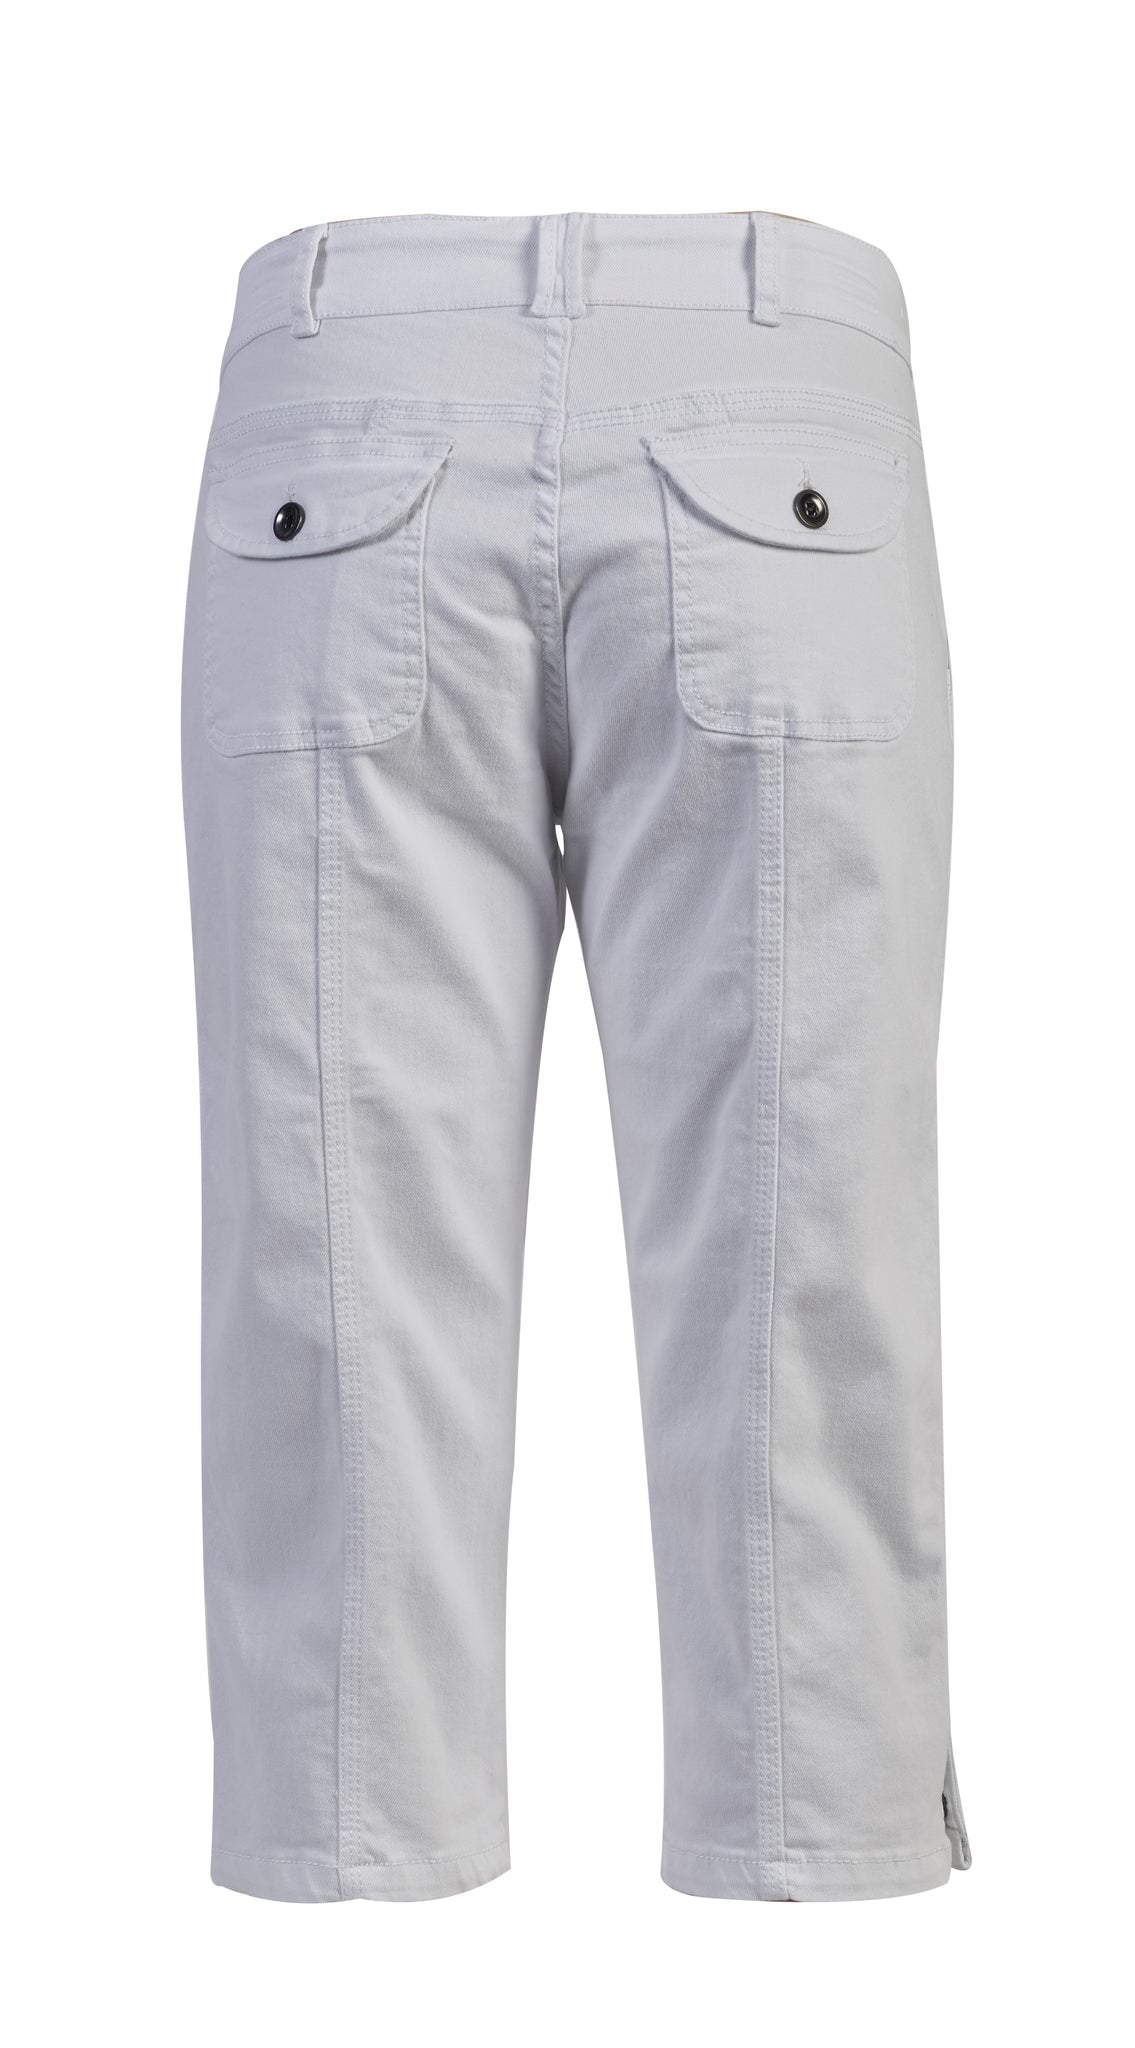 White Denim 3/4 Length Pants by Vassalli